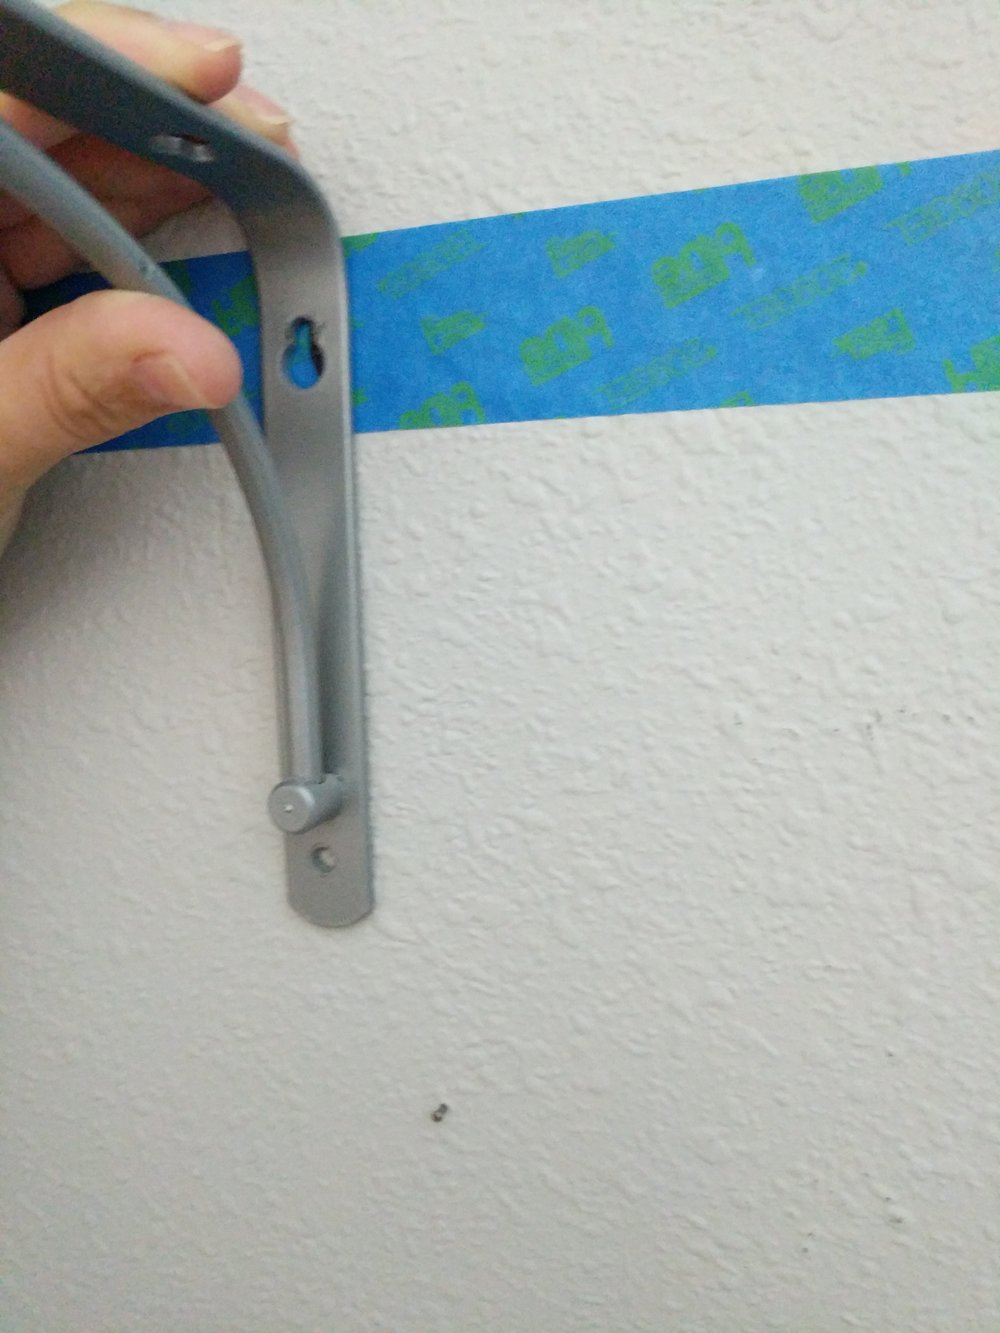 hanging a shelf bracket